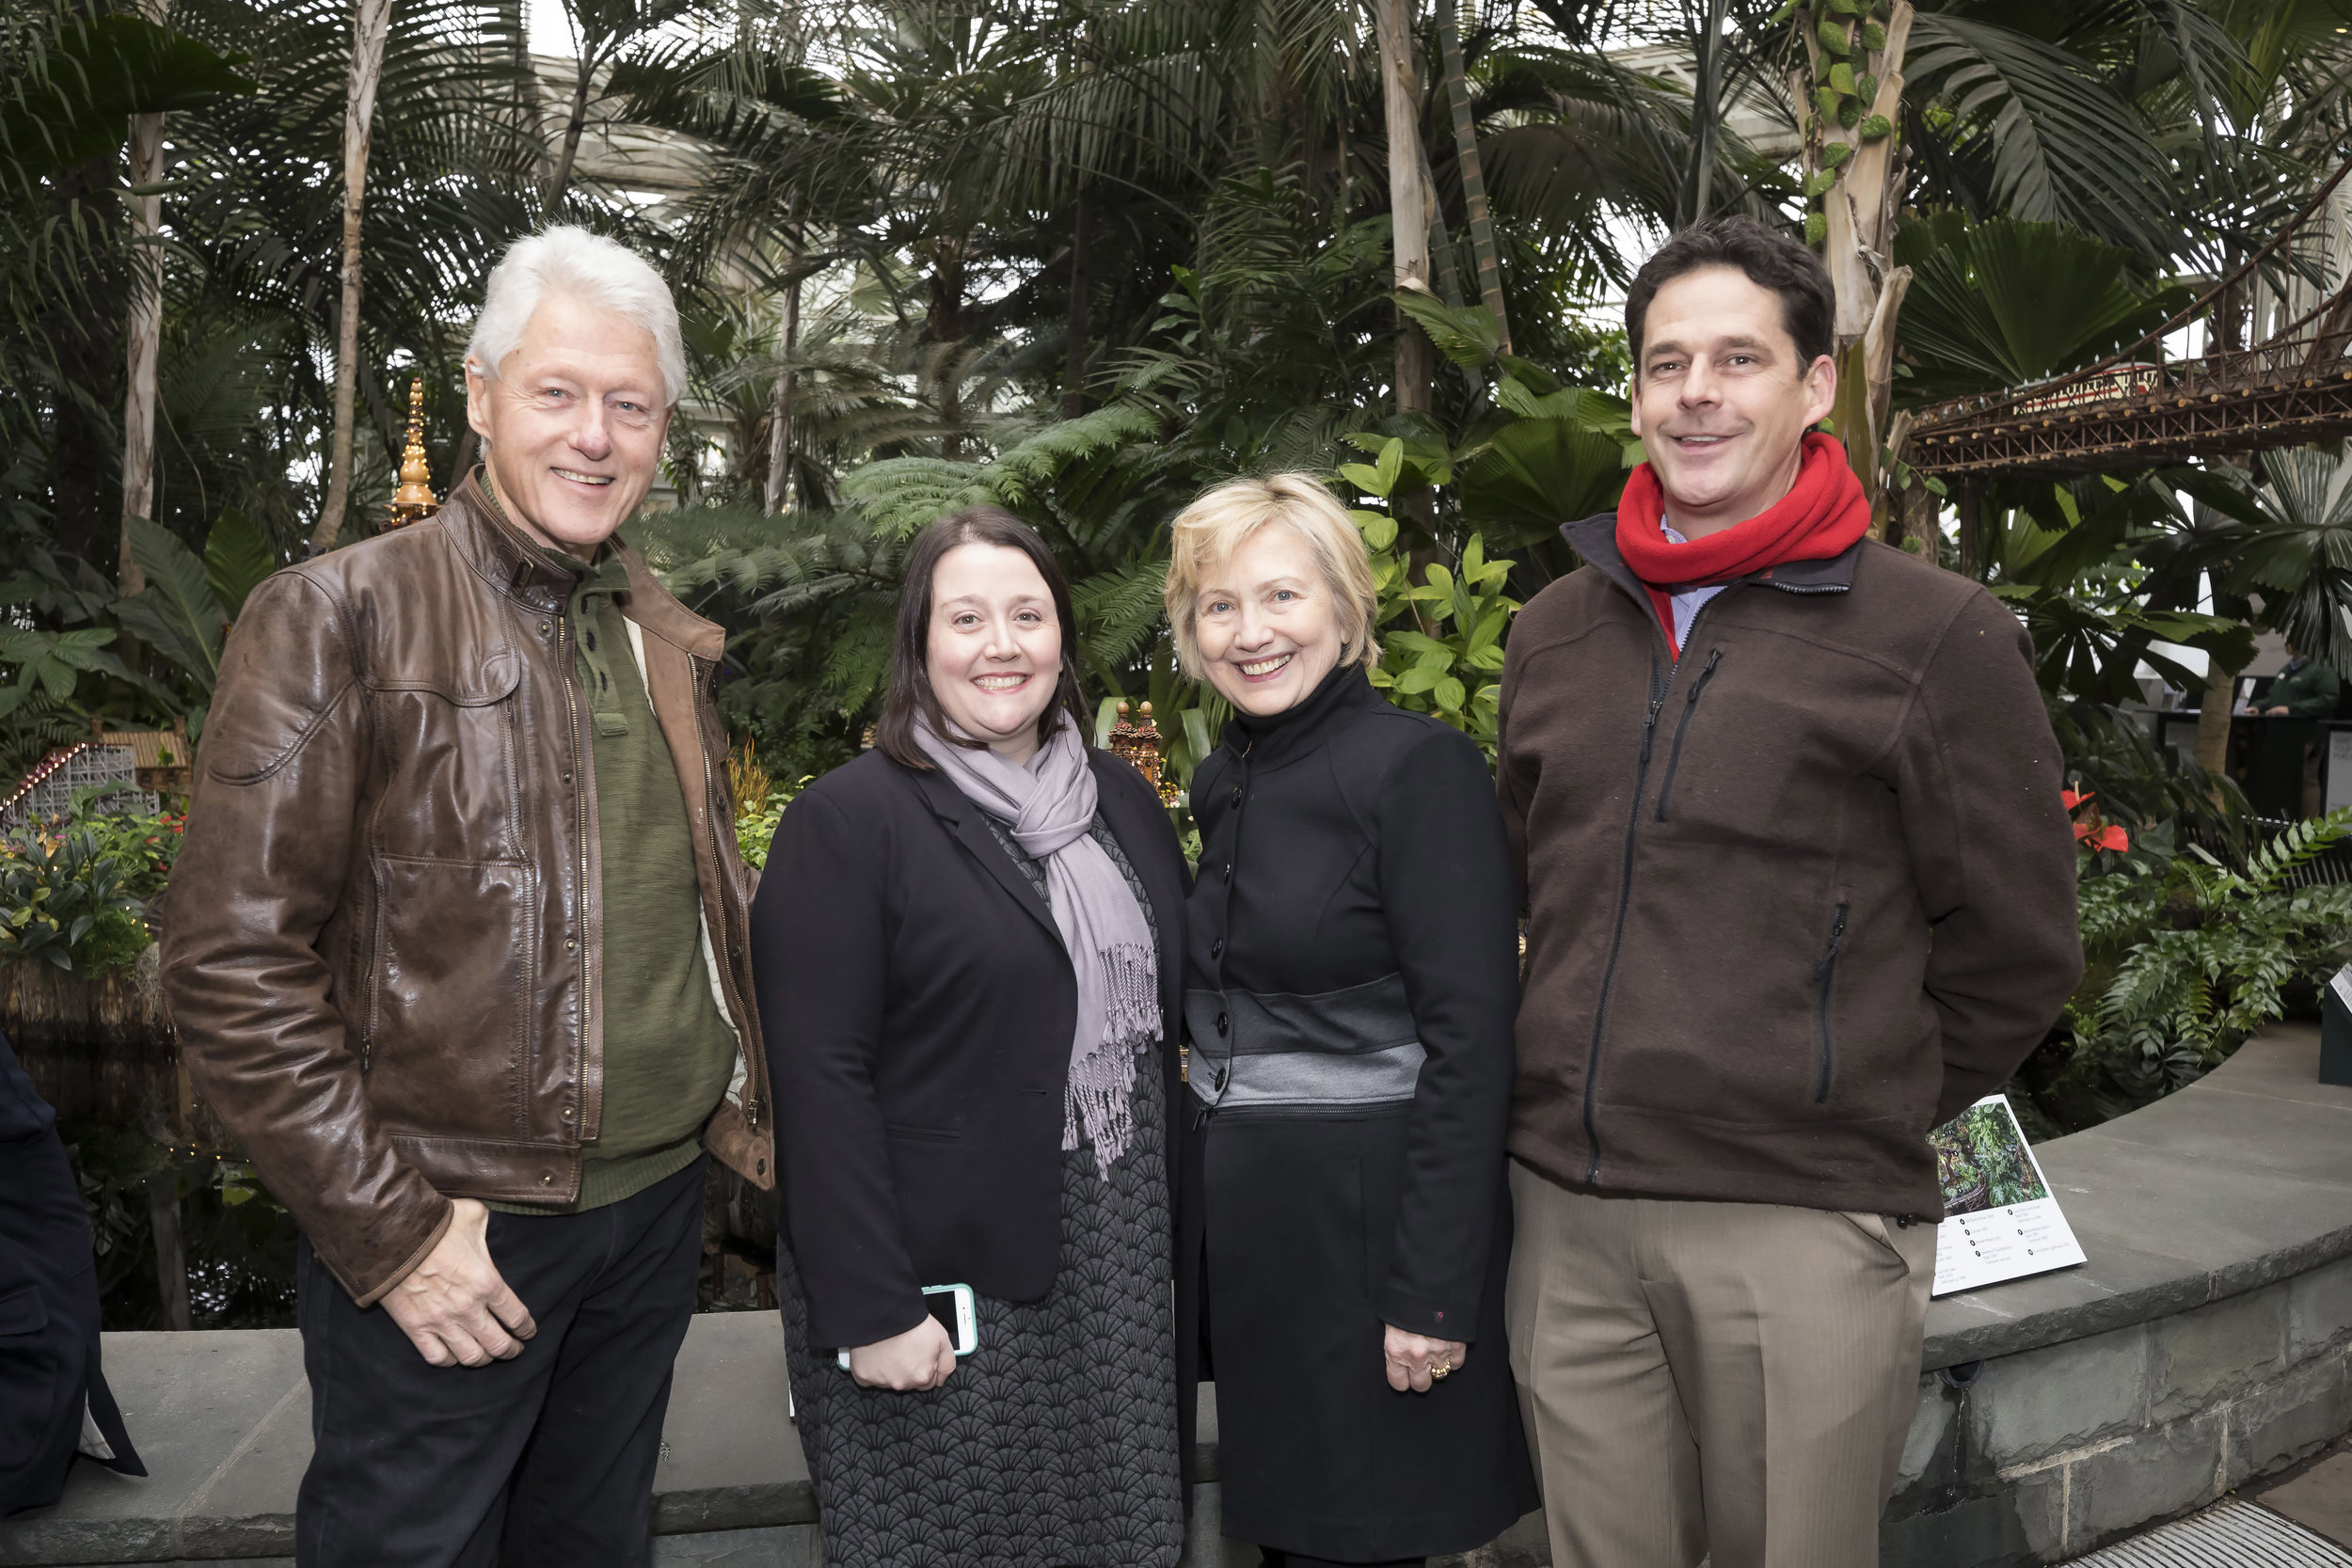 Former President Bill Clinton and Secretary Hillary Clinton visit the New York Botanical Gardens on December 26, 2016 in The Bronx. (Photo by Ben Hider)